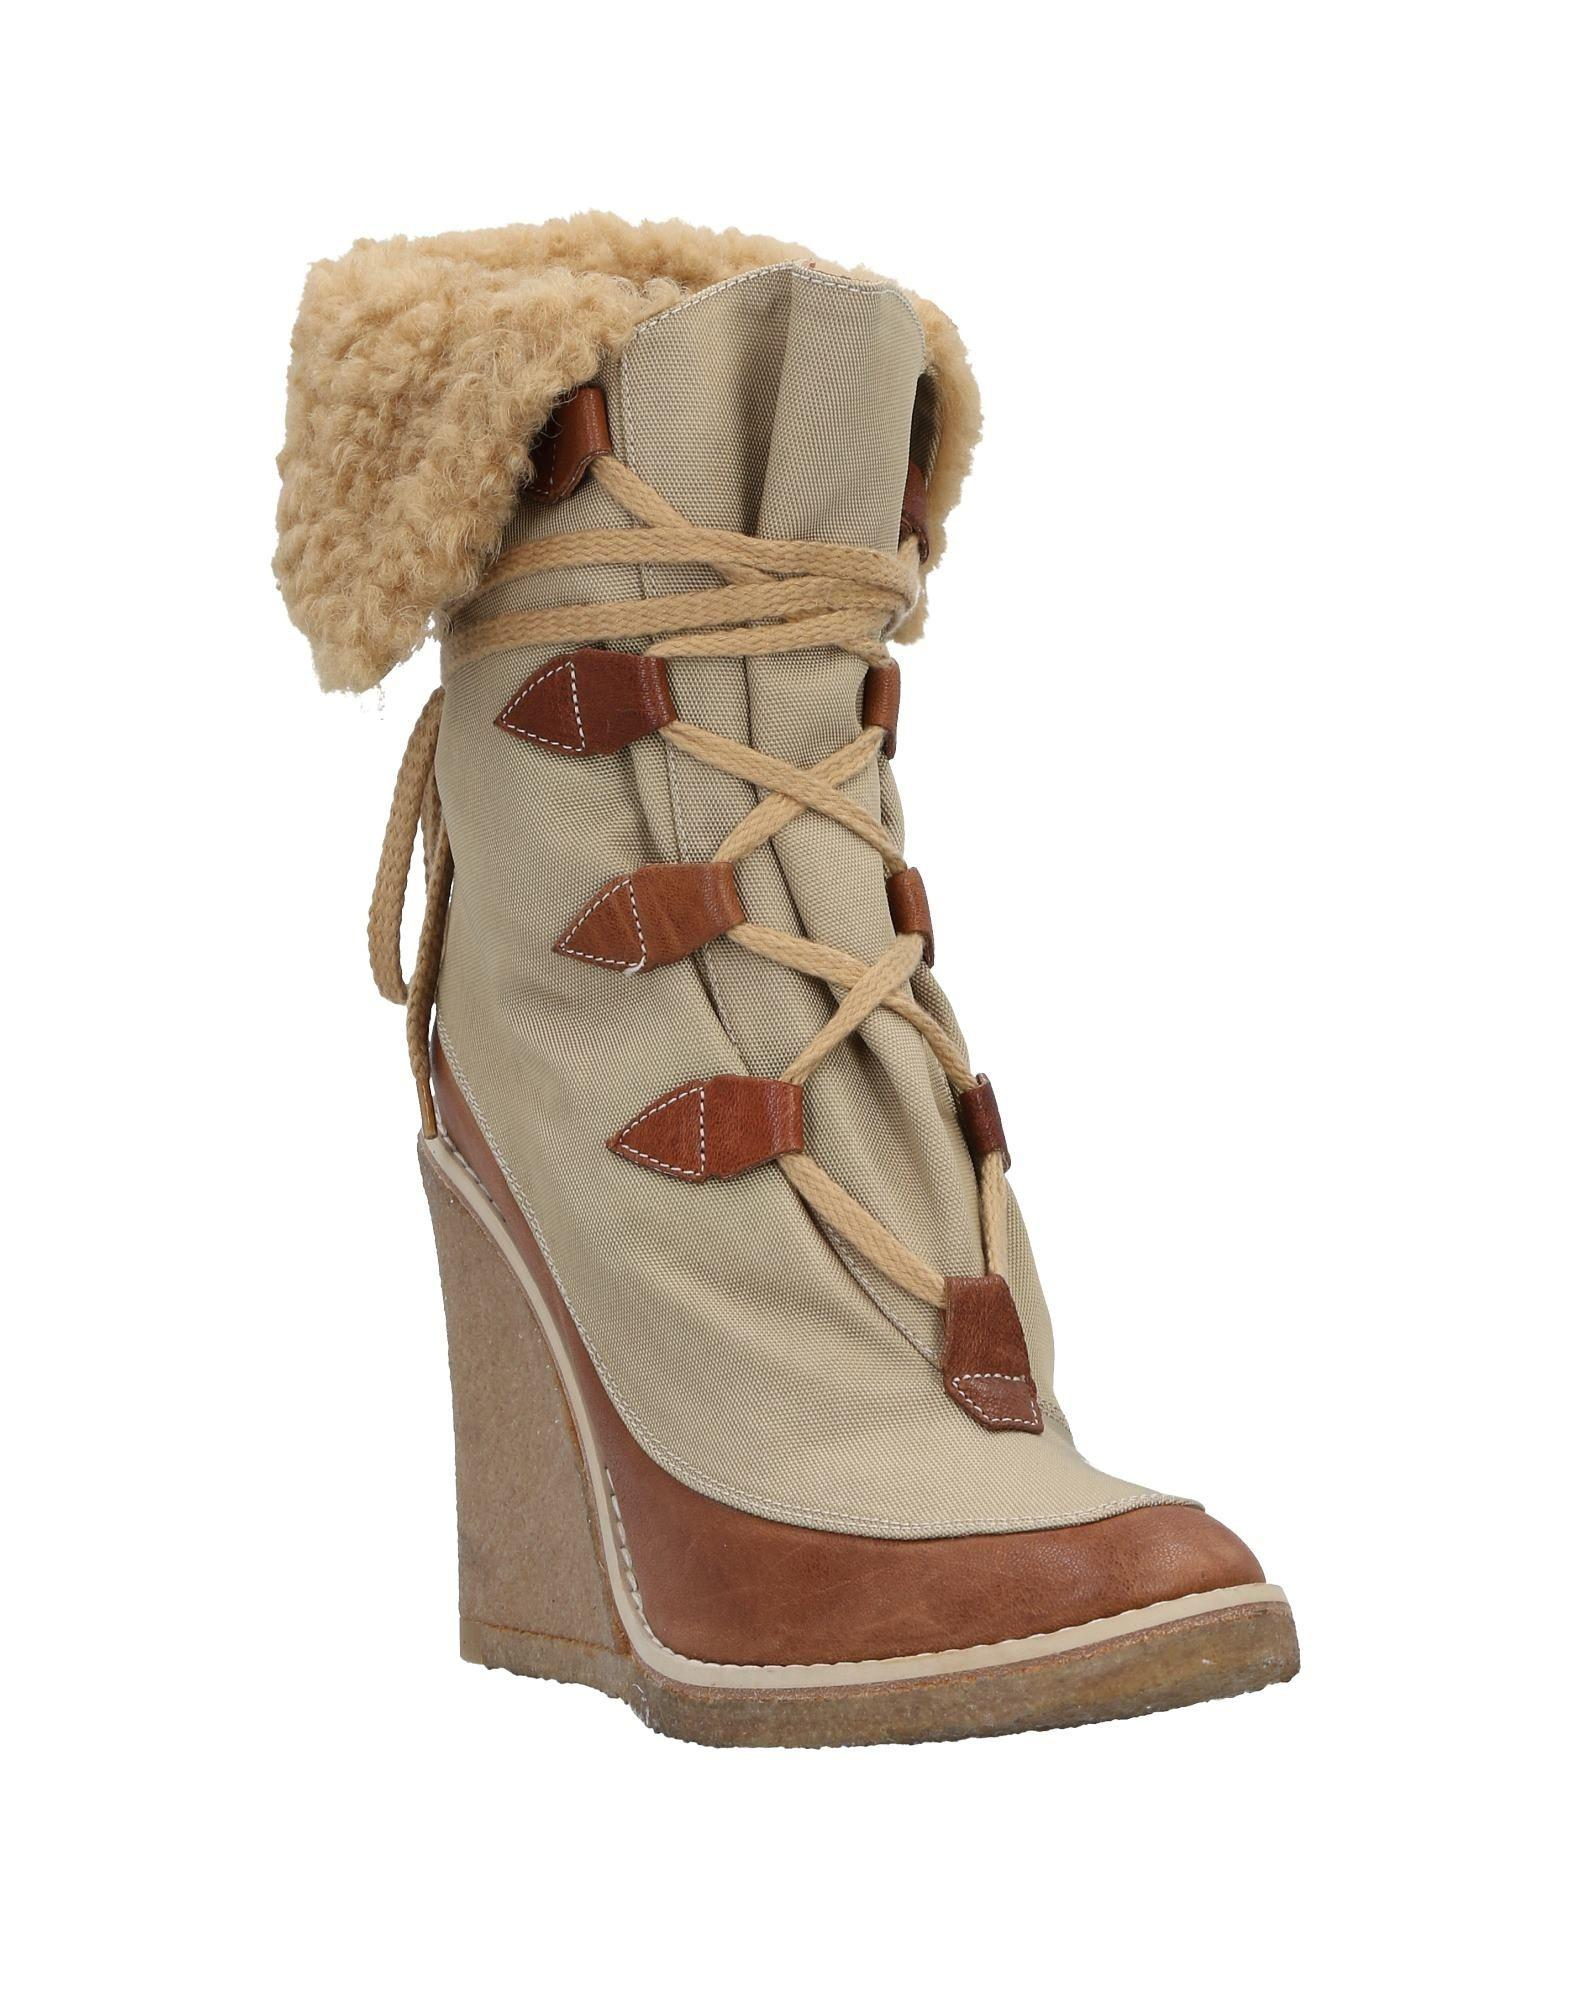 Chloé Ankle Boots in Beige (Natural)